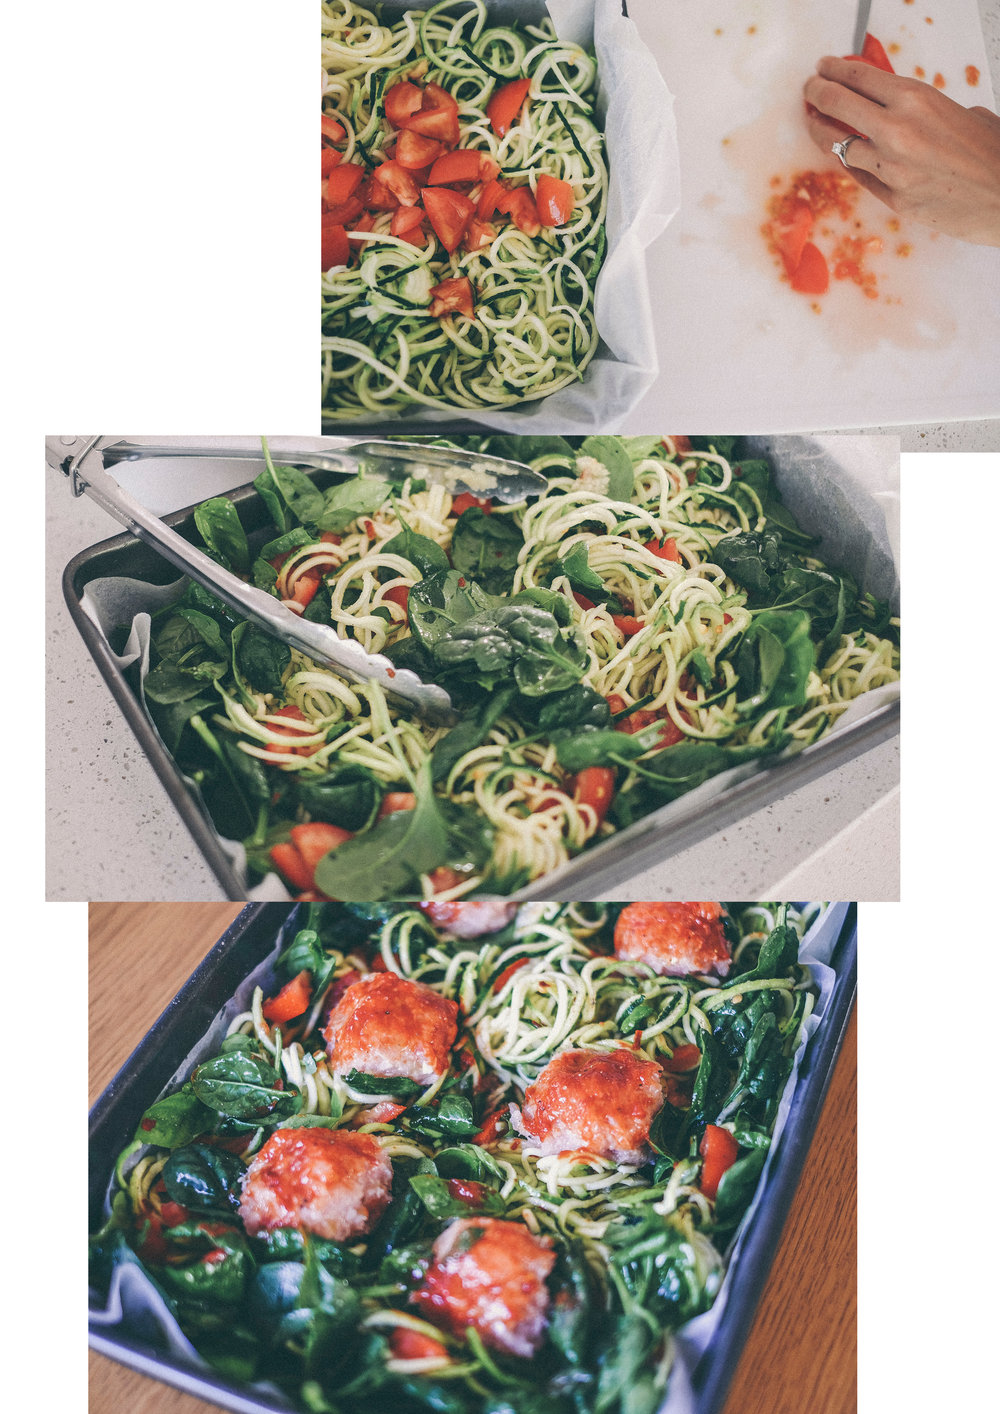 dérrive recipe - easy healthy weeknight dinner - one tray baked zucchetti and chicken meatballs www.derrive.com #paleo #whole30 #health #wellness #zucchinipasta #zucchetti